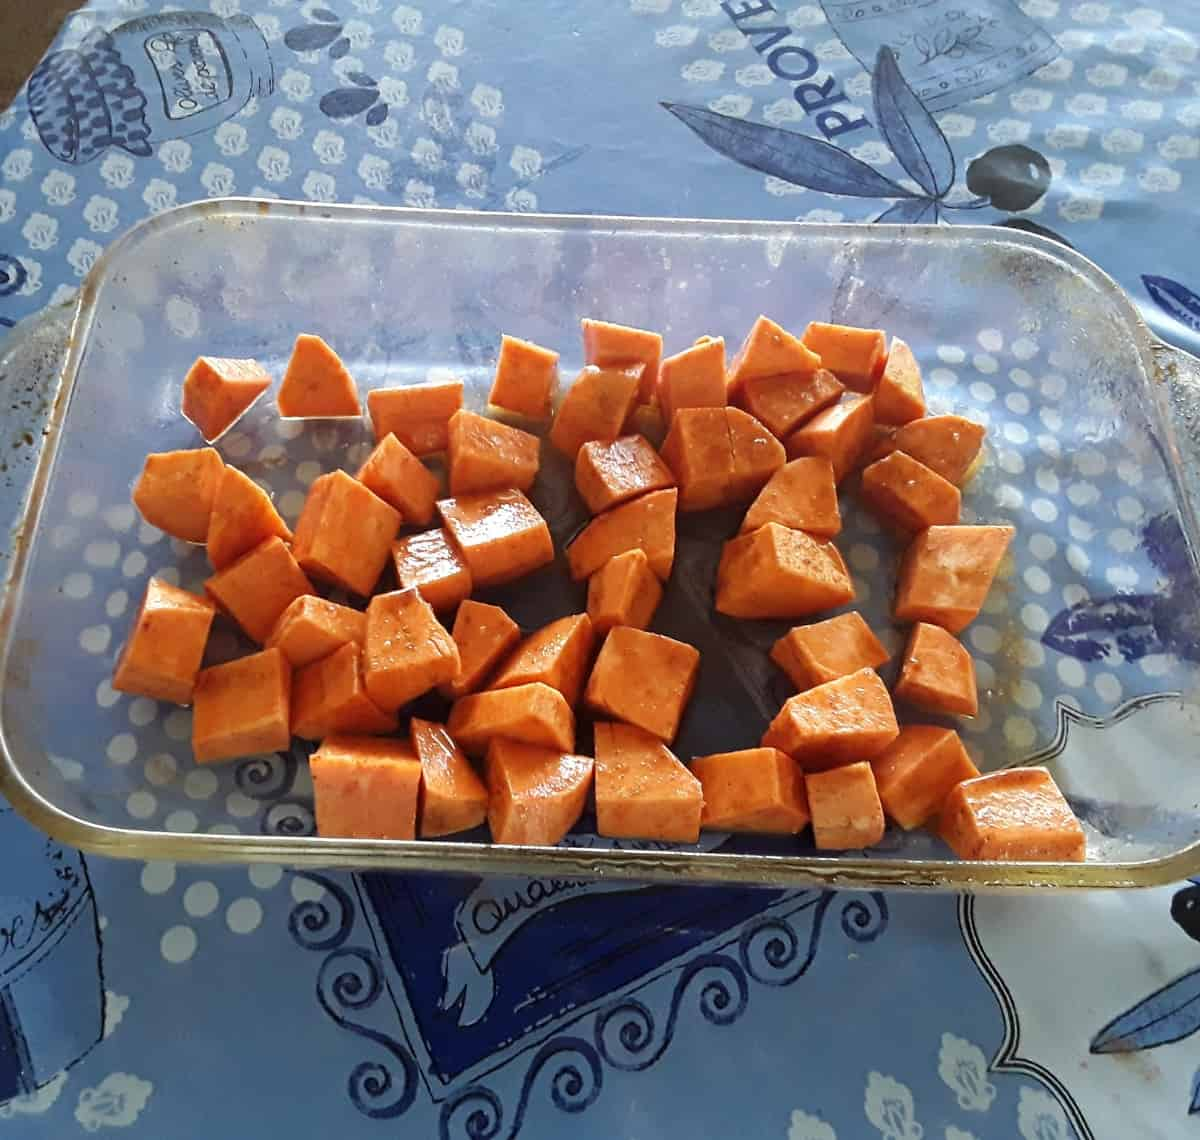 Uncooked chopped sweet potatoes in glass baking dish.